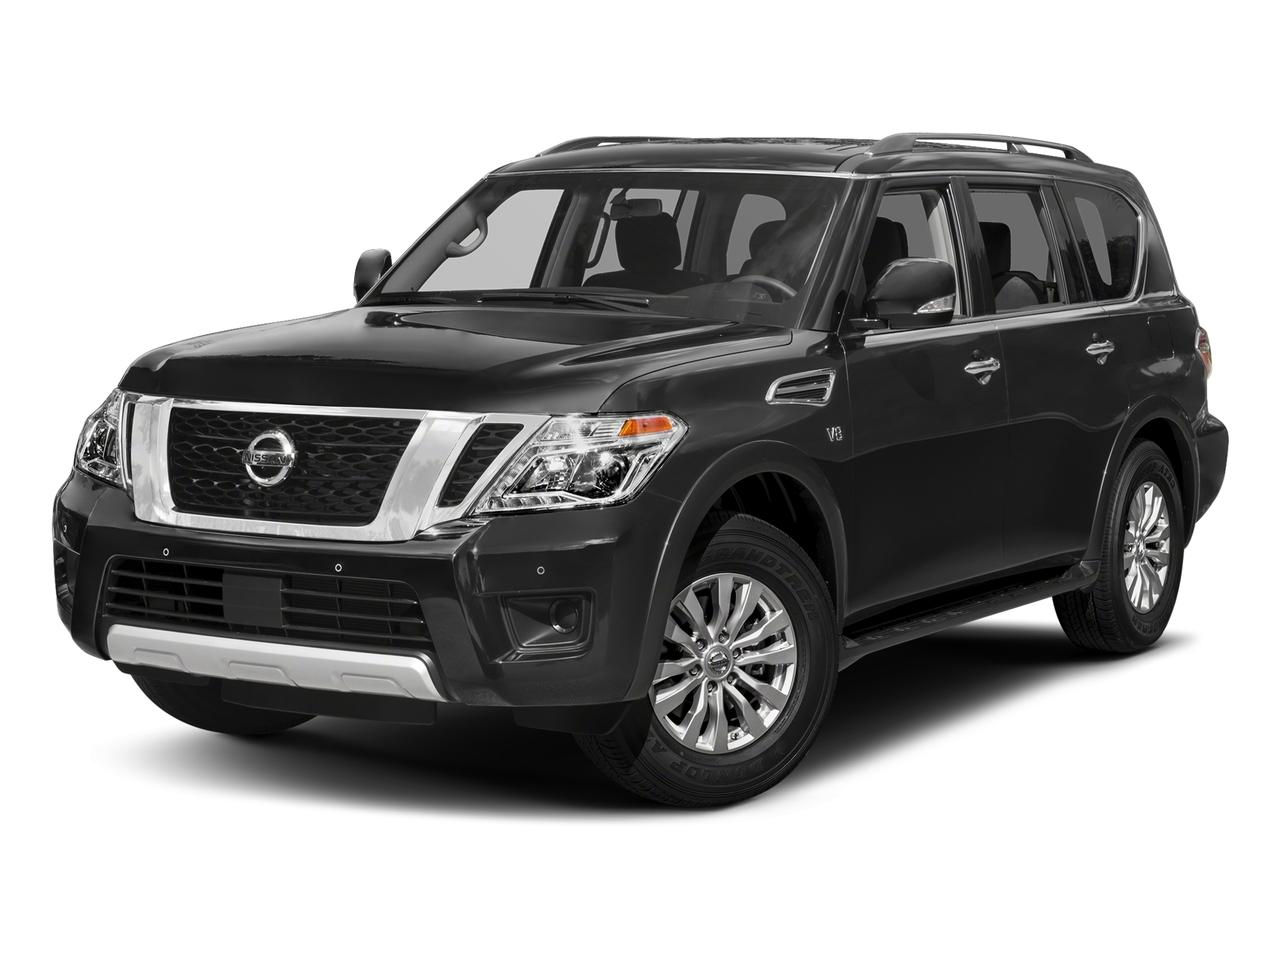 2017 Nissan Armada Vehicle Photo in San Antonio, TX 78254